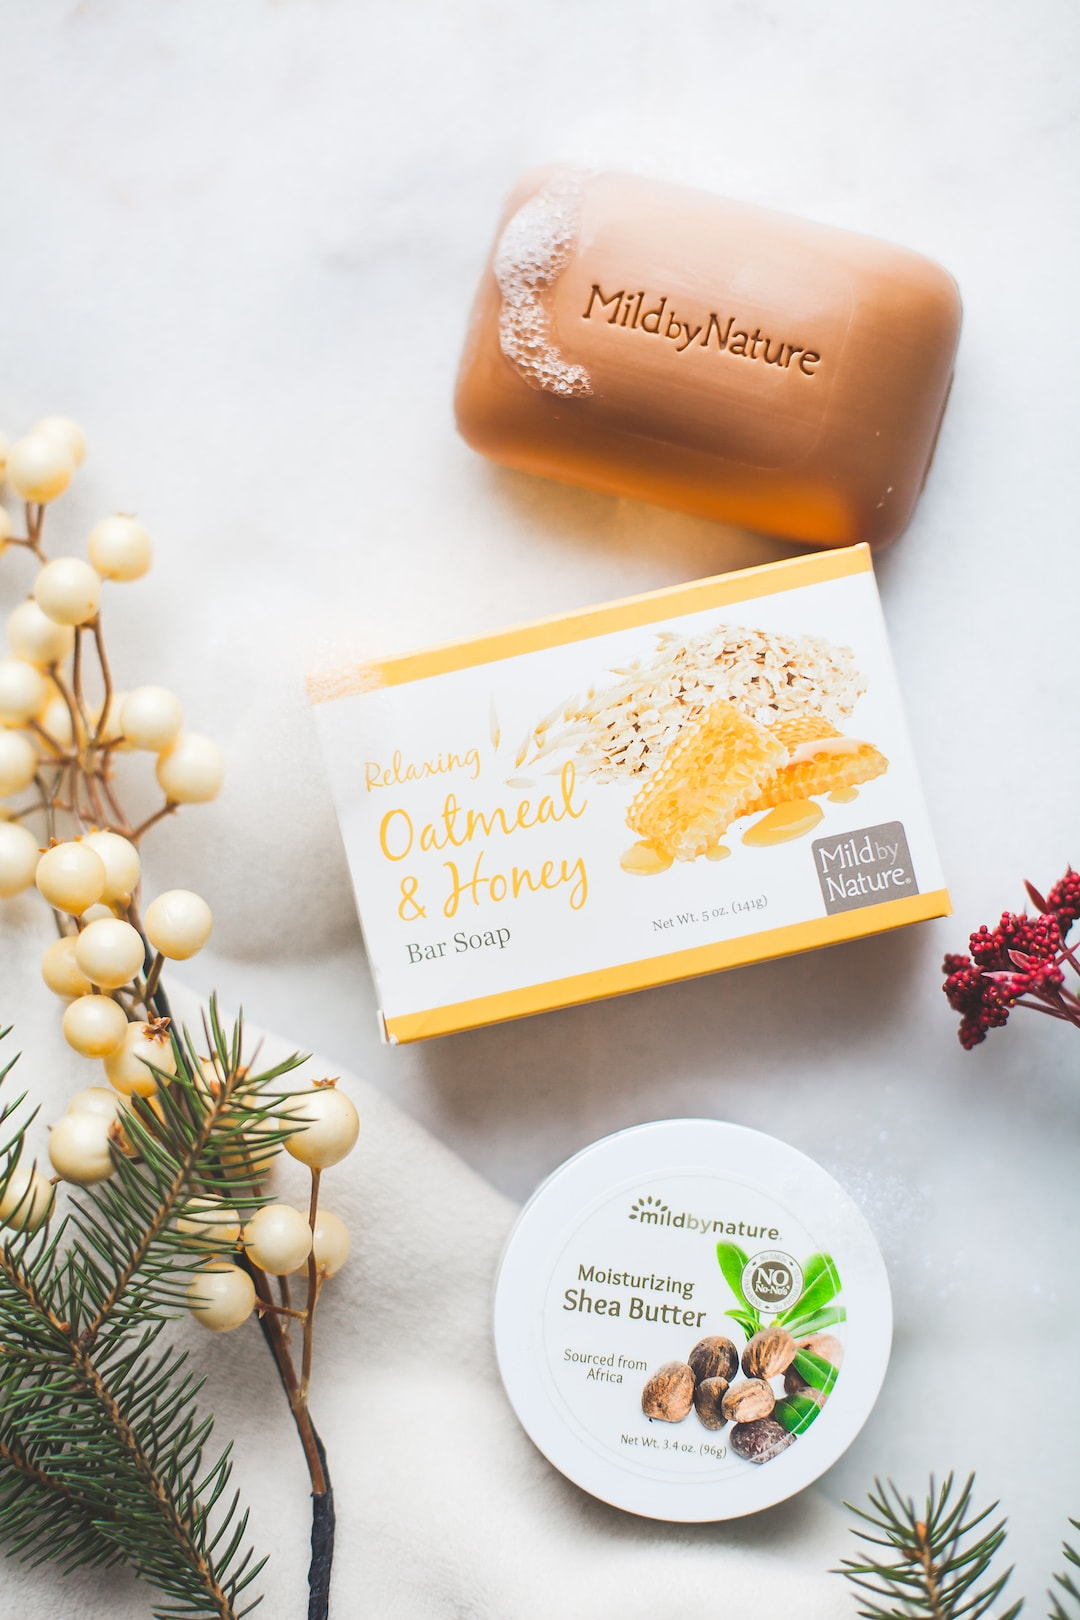 8 Self-Care Ideas For The Holiday Season - Practice Hygge with Mild By Nature Soaps